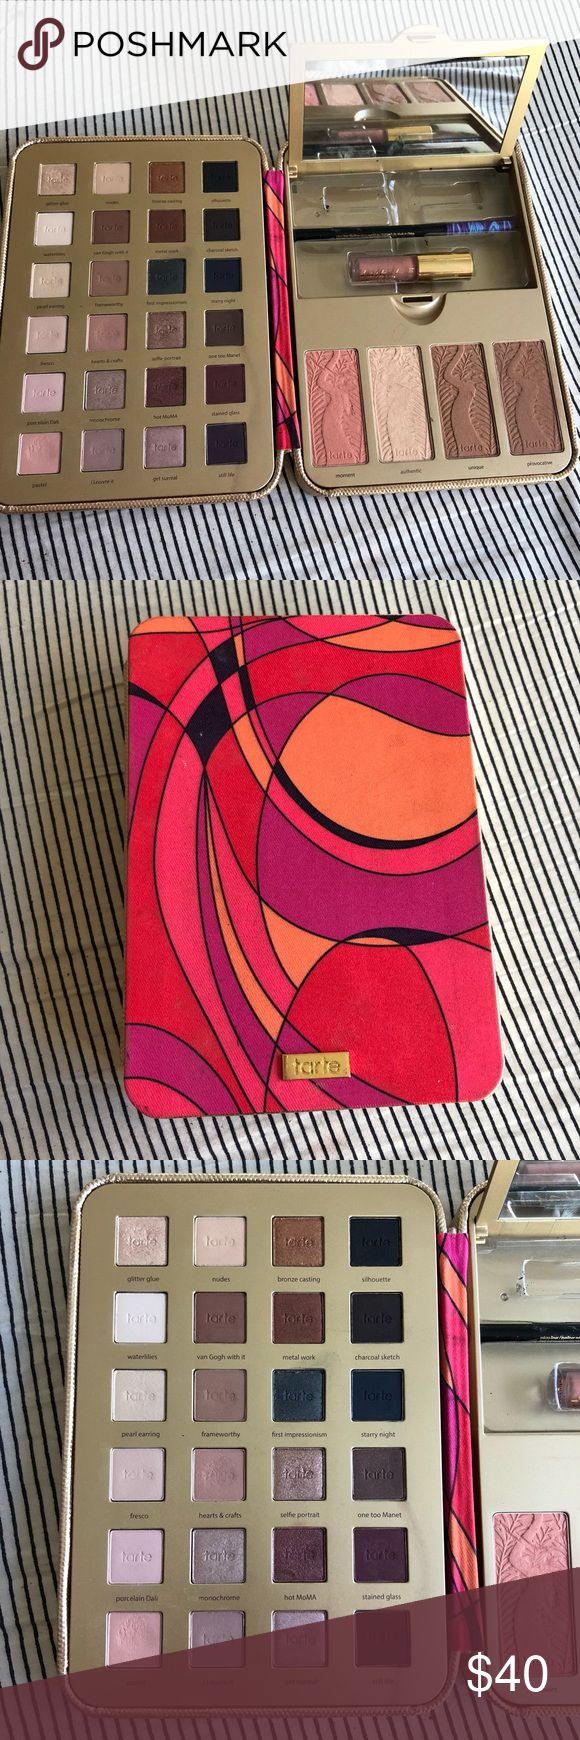 Tarte Palette The 2016 Tarte holiday palette! Pretty paintbox. In great condition, barely used but the mascara that should come with it is gone! tarte Makeup